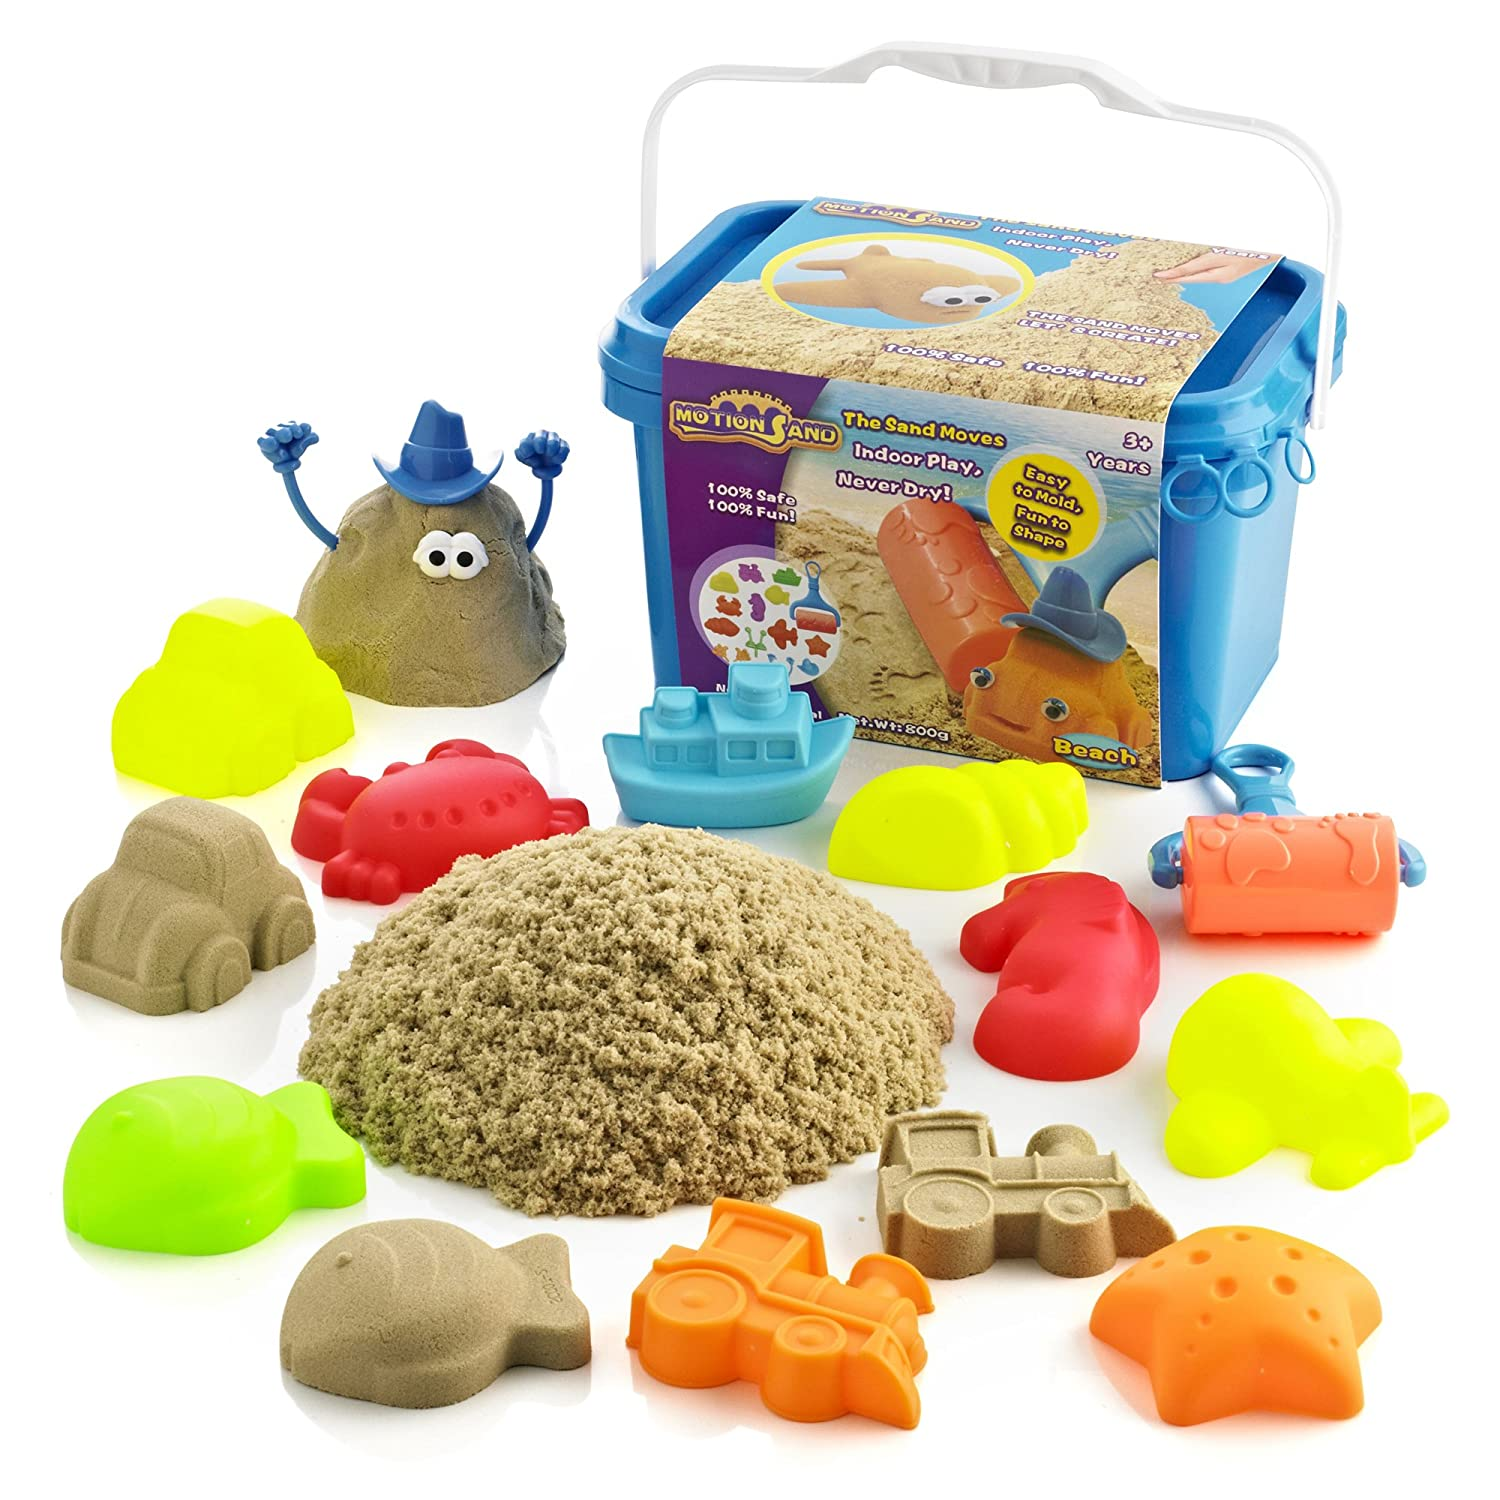 Motion Sand Beach Bucket Playset Amazon Toys & Games